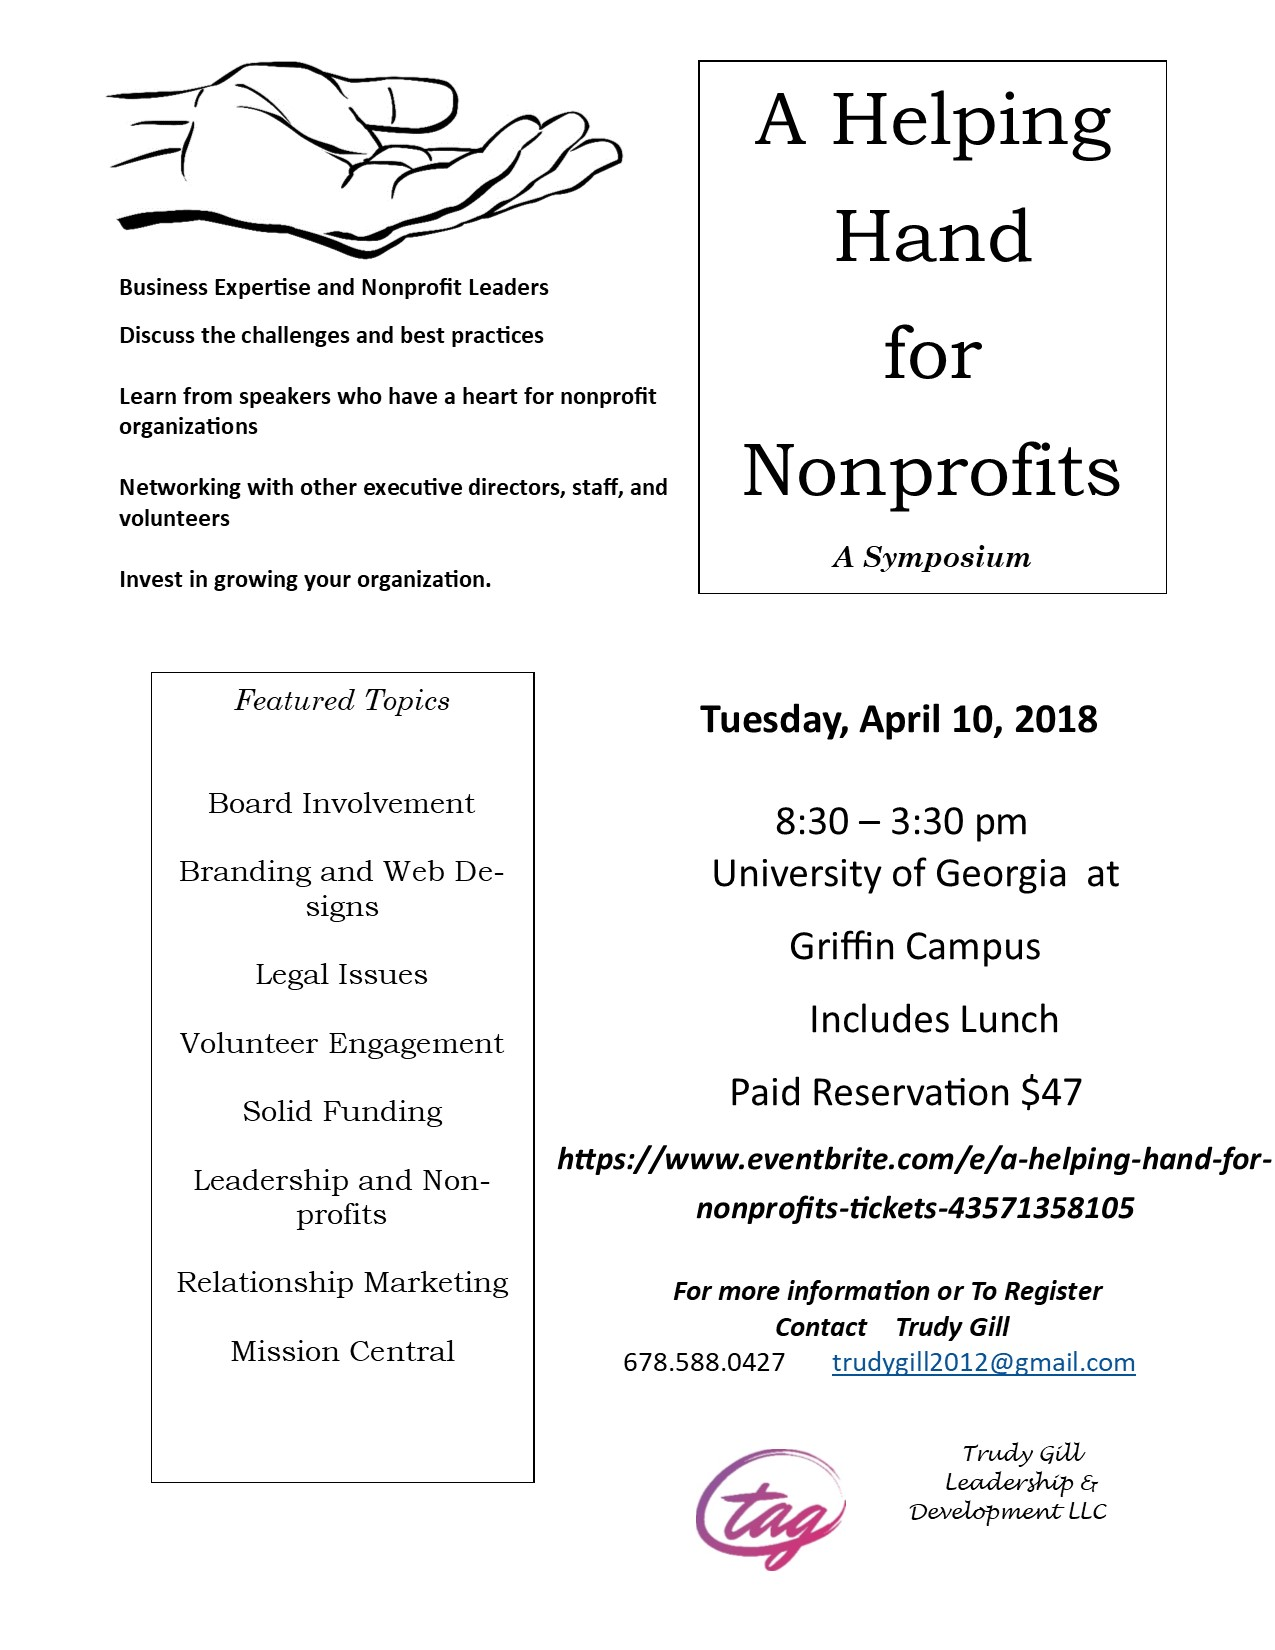 Helping Hand for Non-Profits Symposium